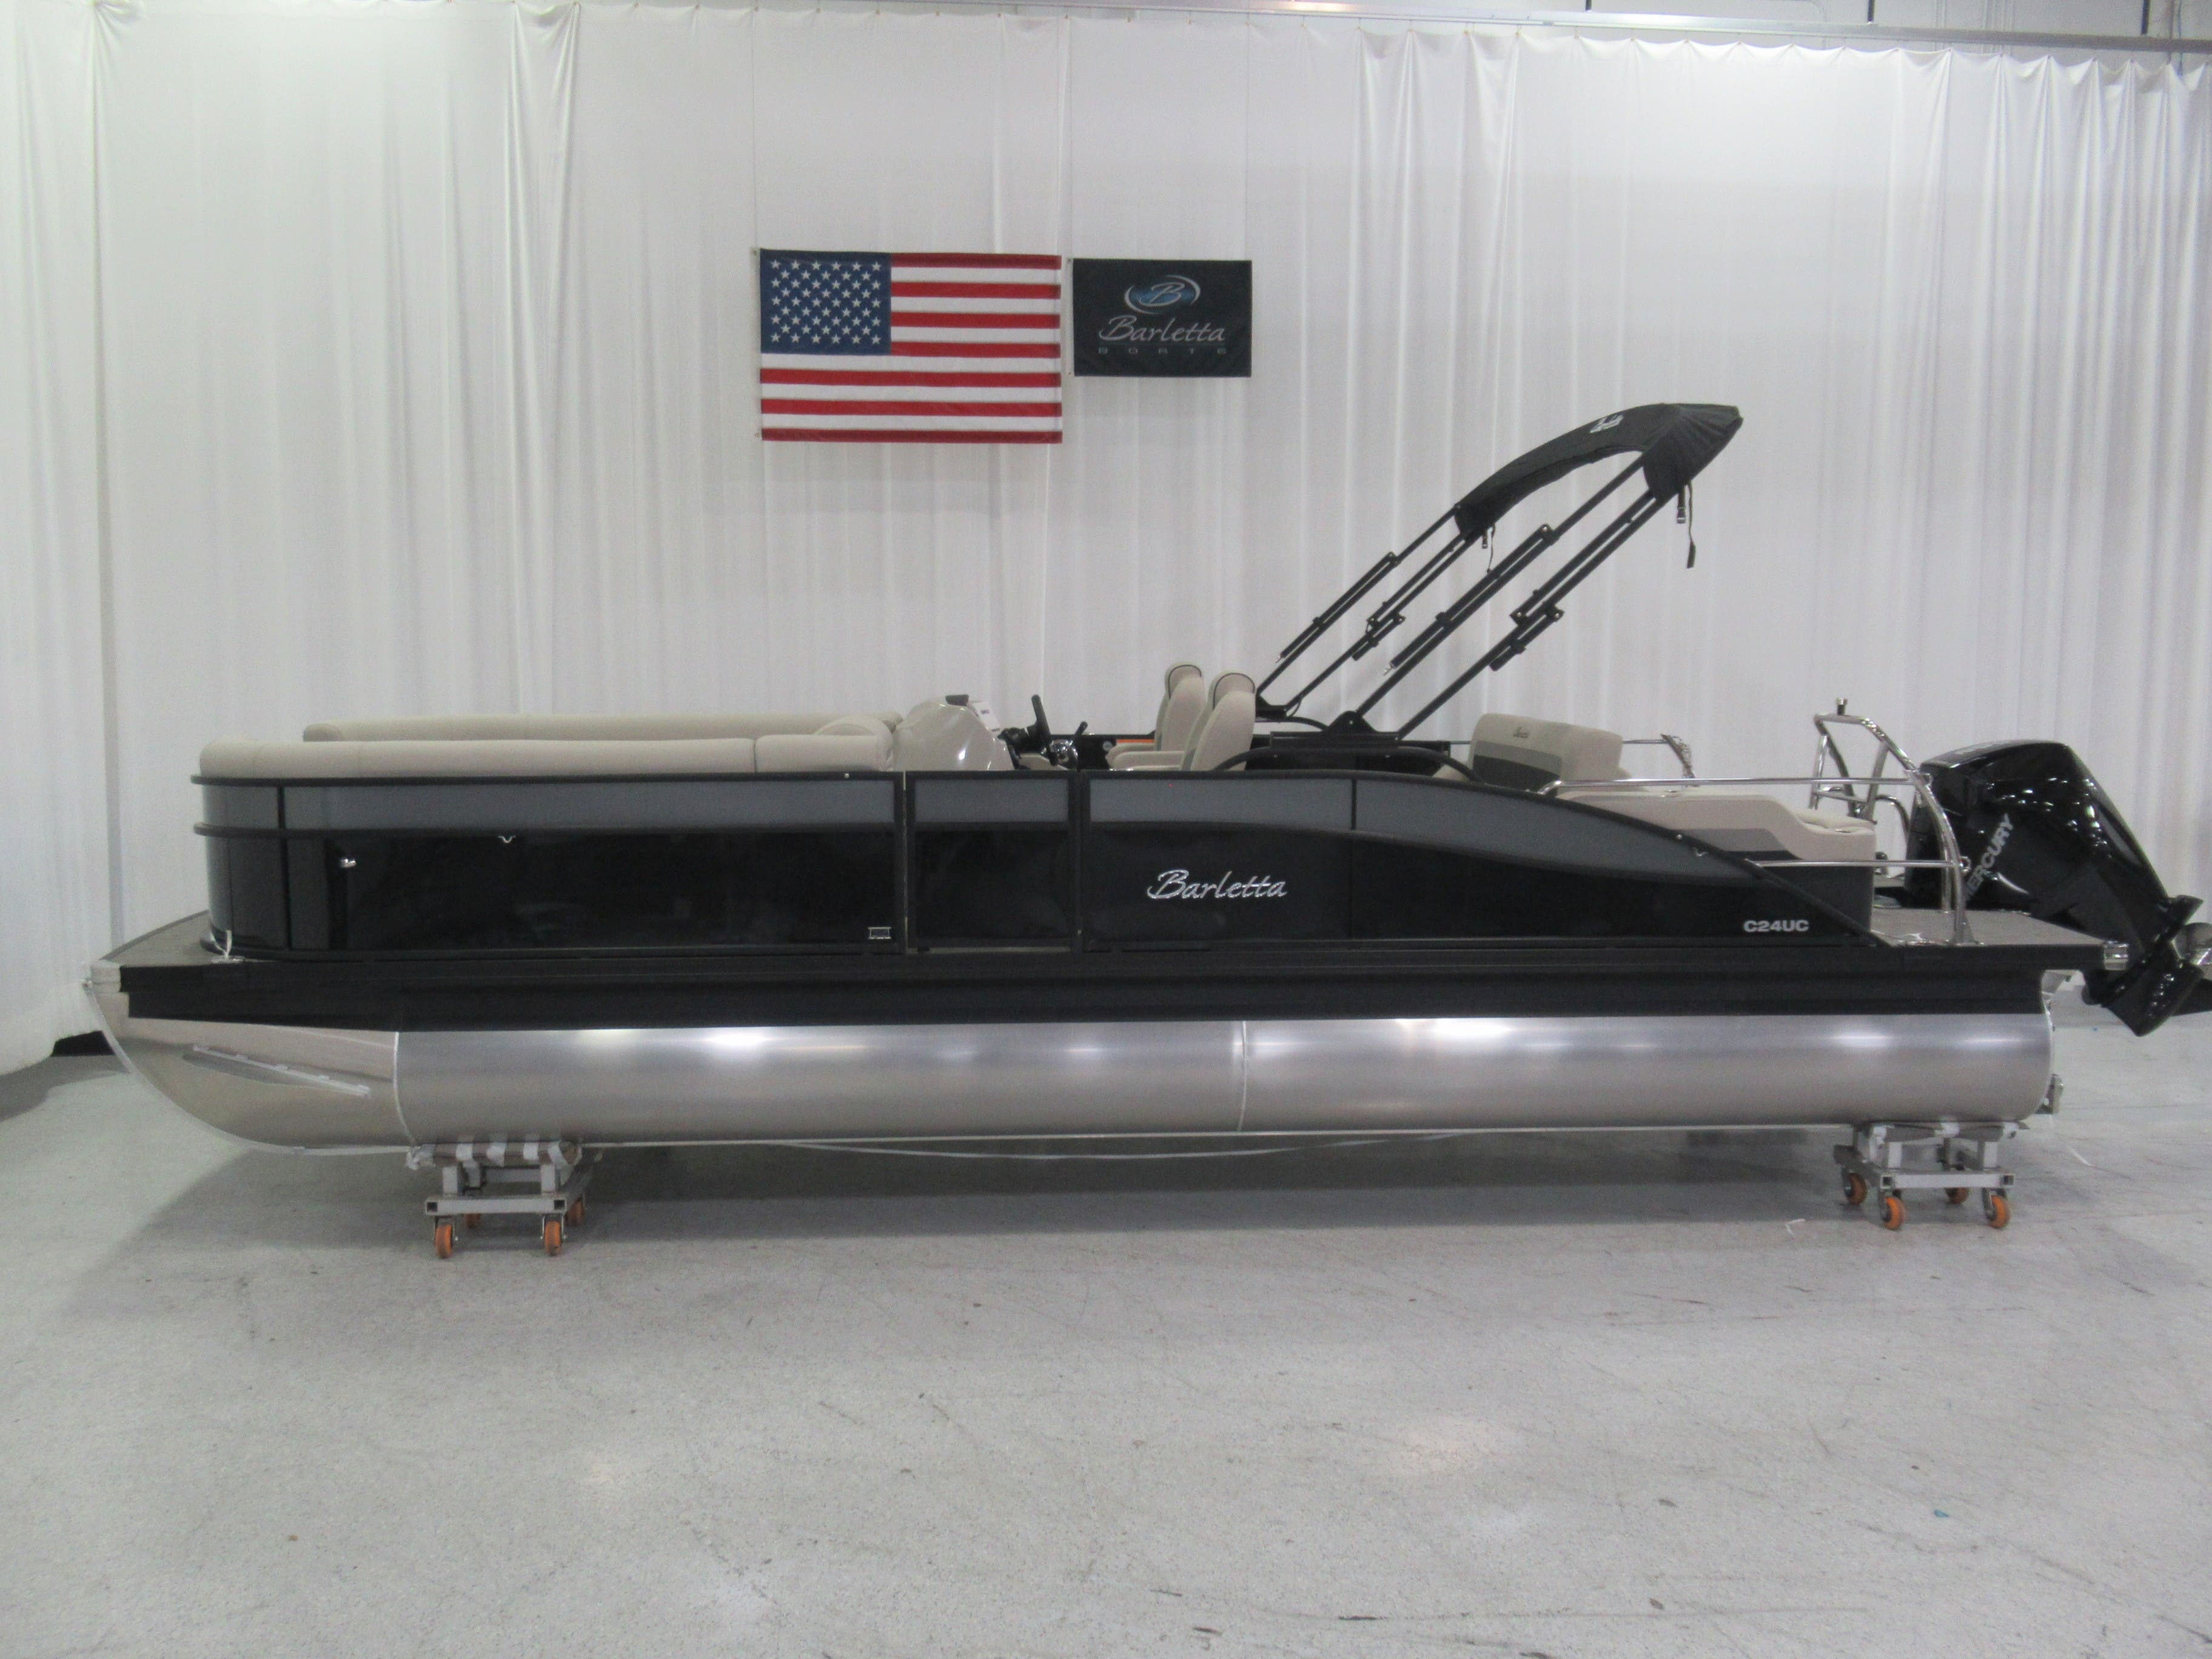 2021 Barletta boat for sale, model of the boat is C24uc & Image # 3 of 11